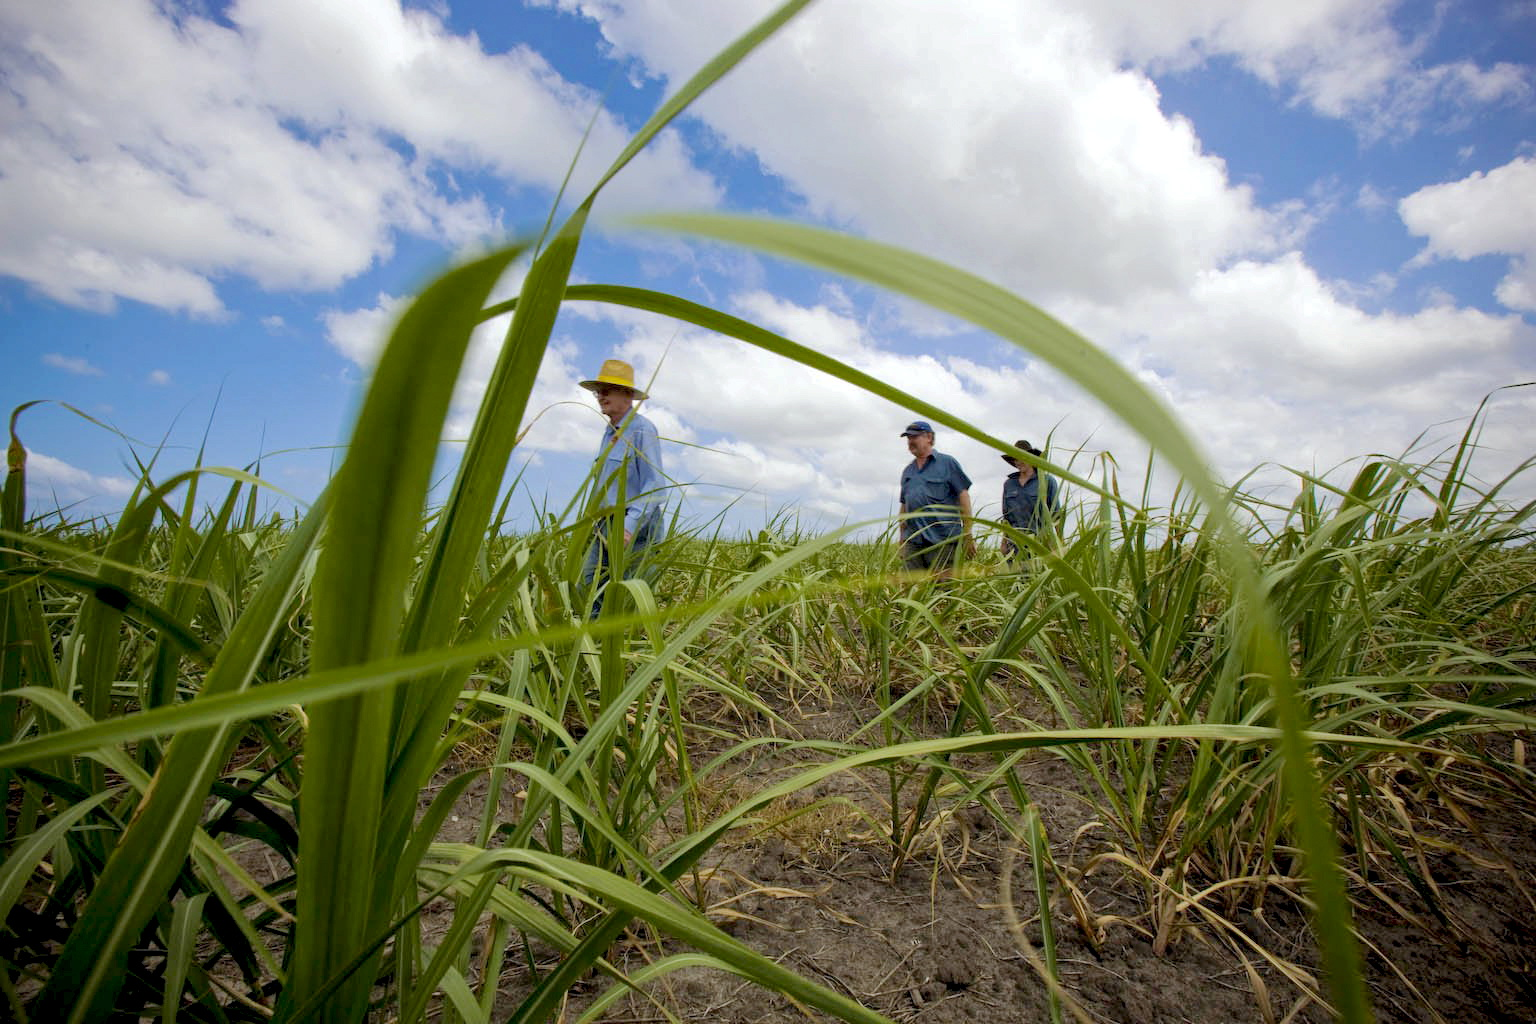 Canegrowers walk through a Norwell farm -- a site soon to become a thriving town or